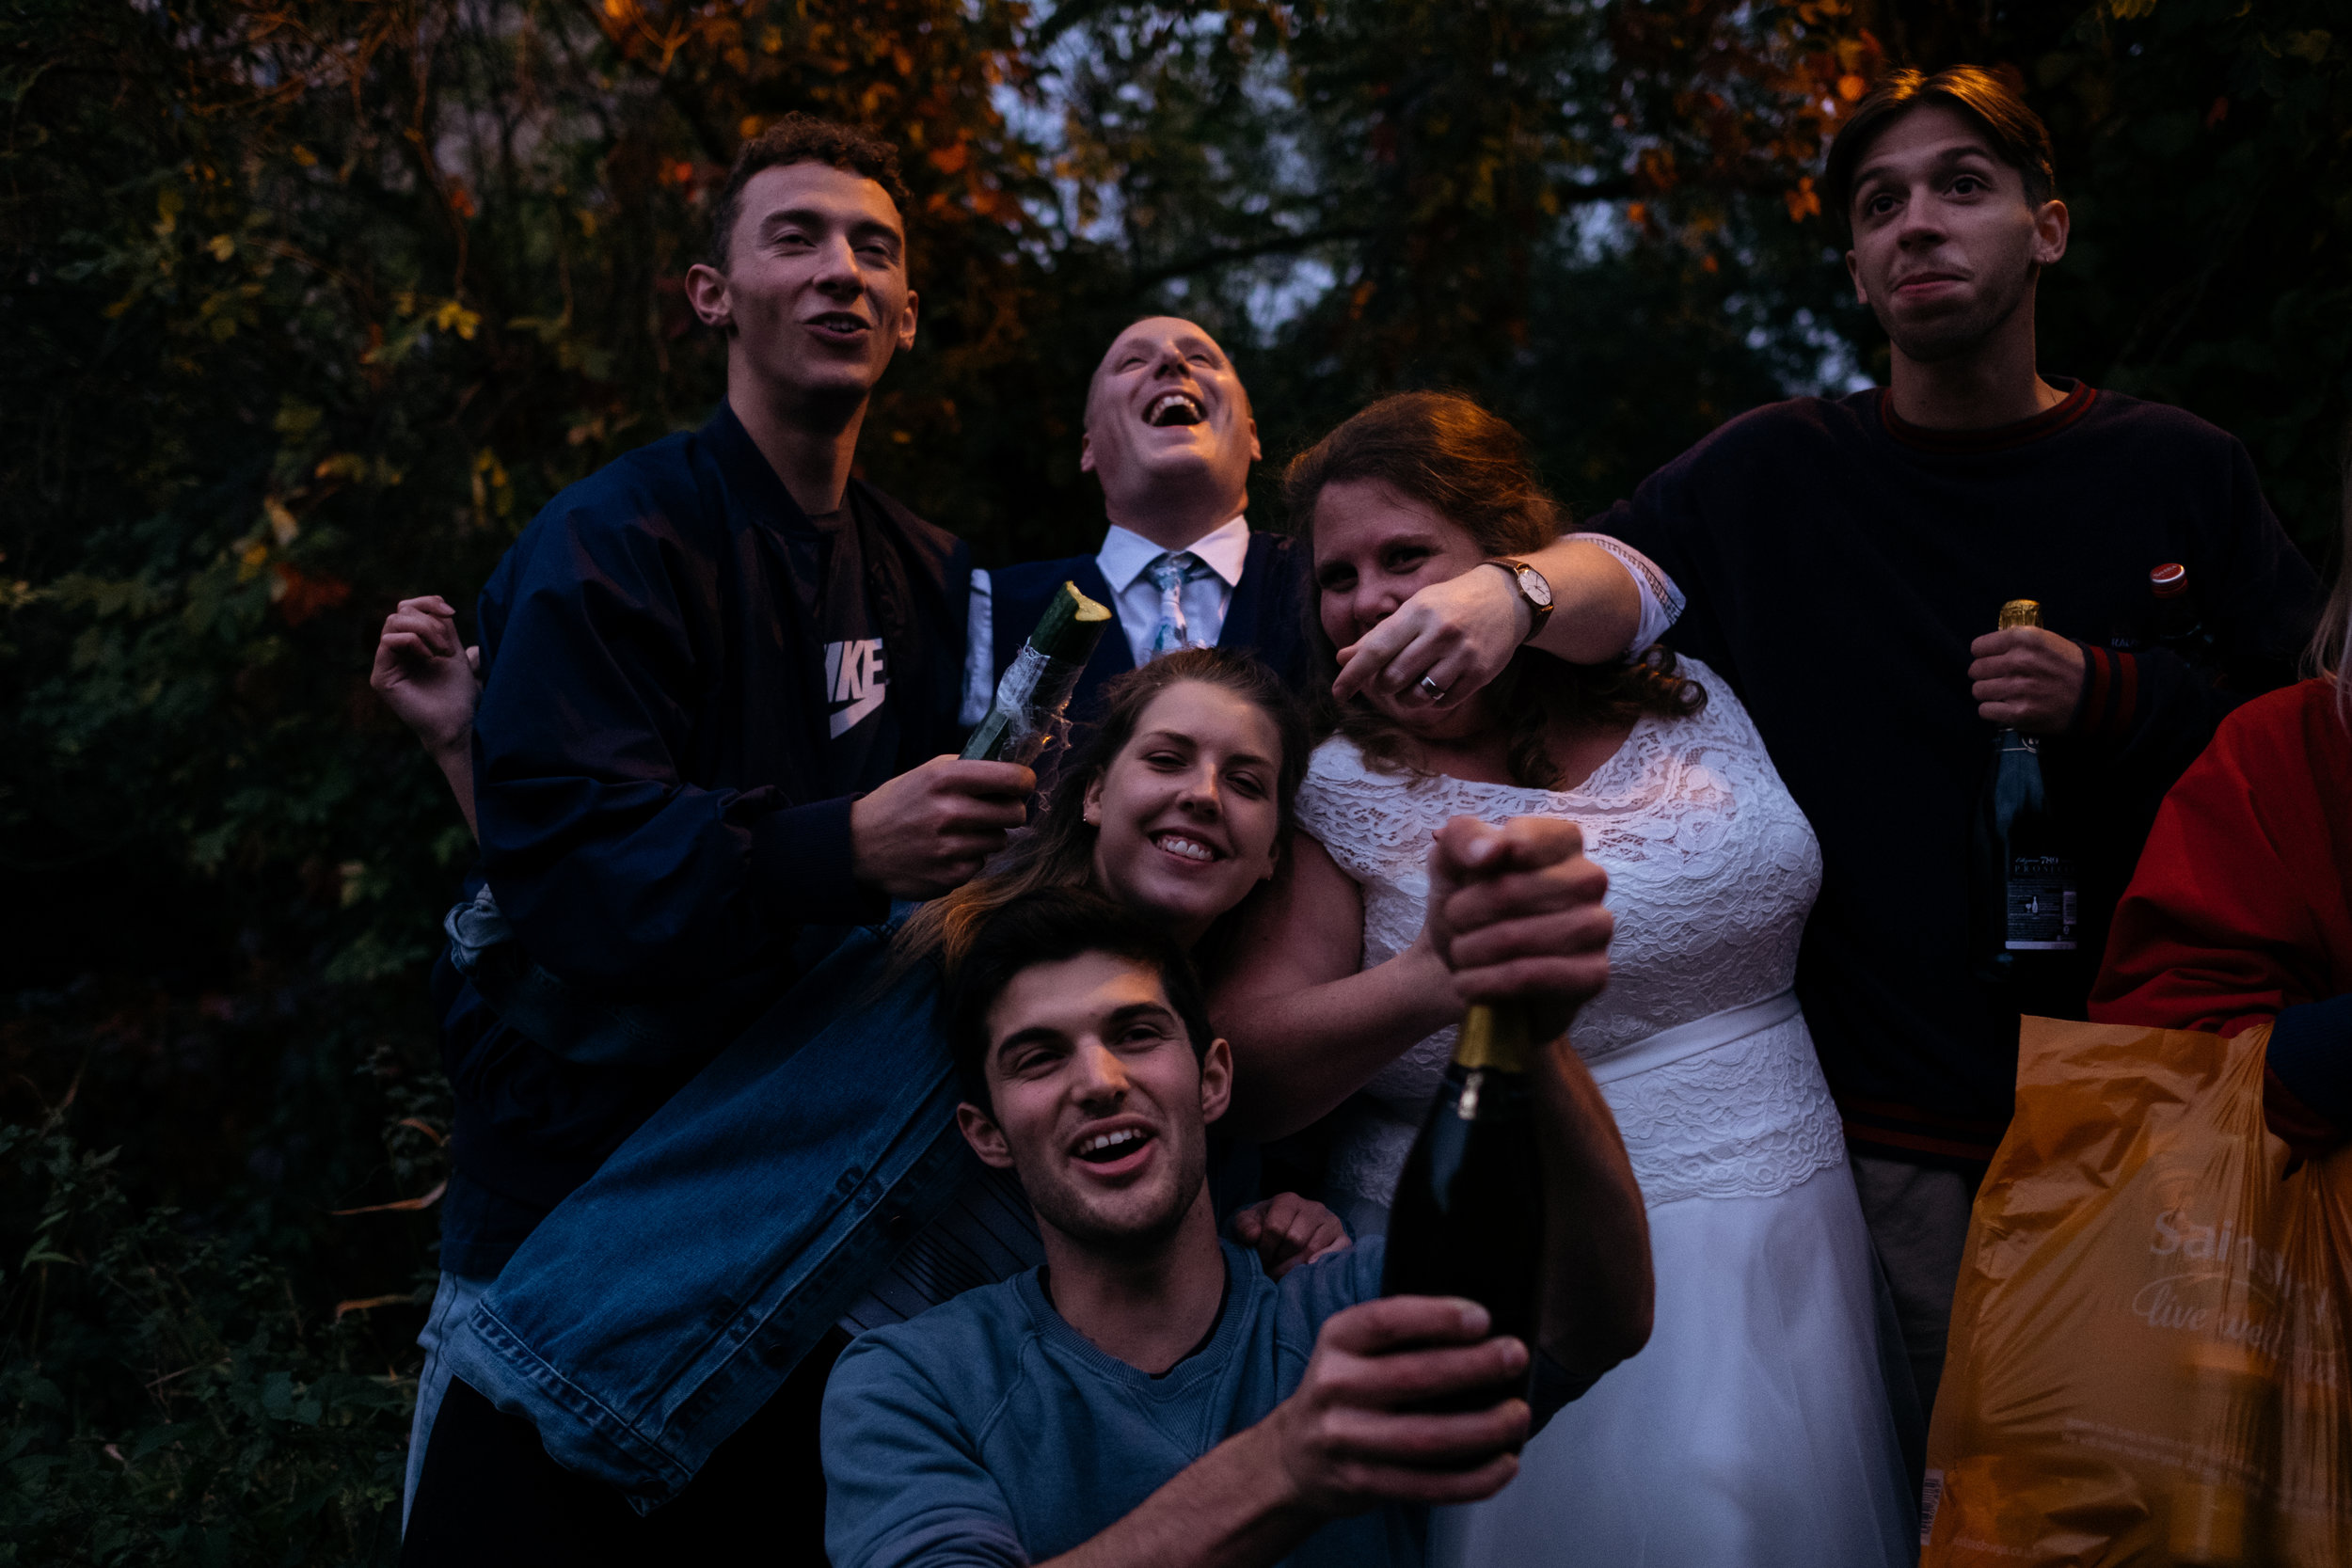 Group of people with bride and groom and bottle of prosecco